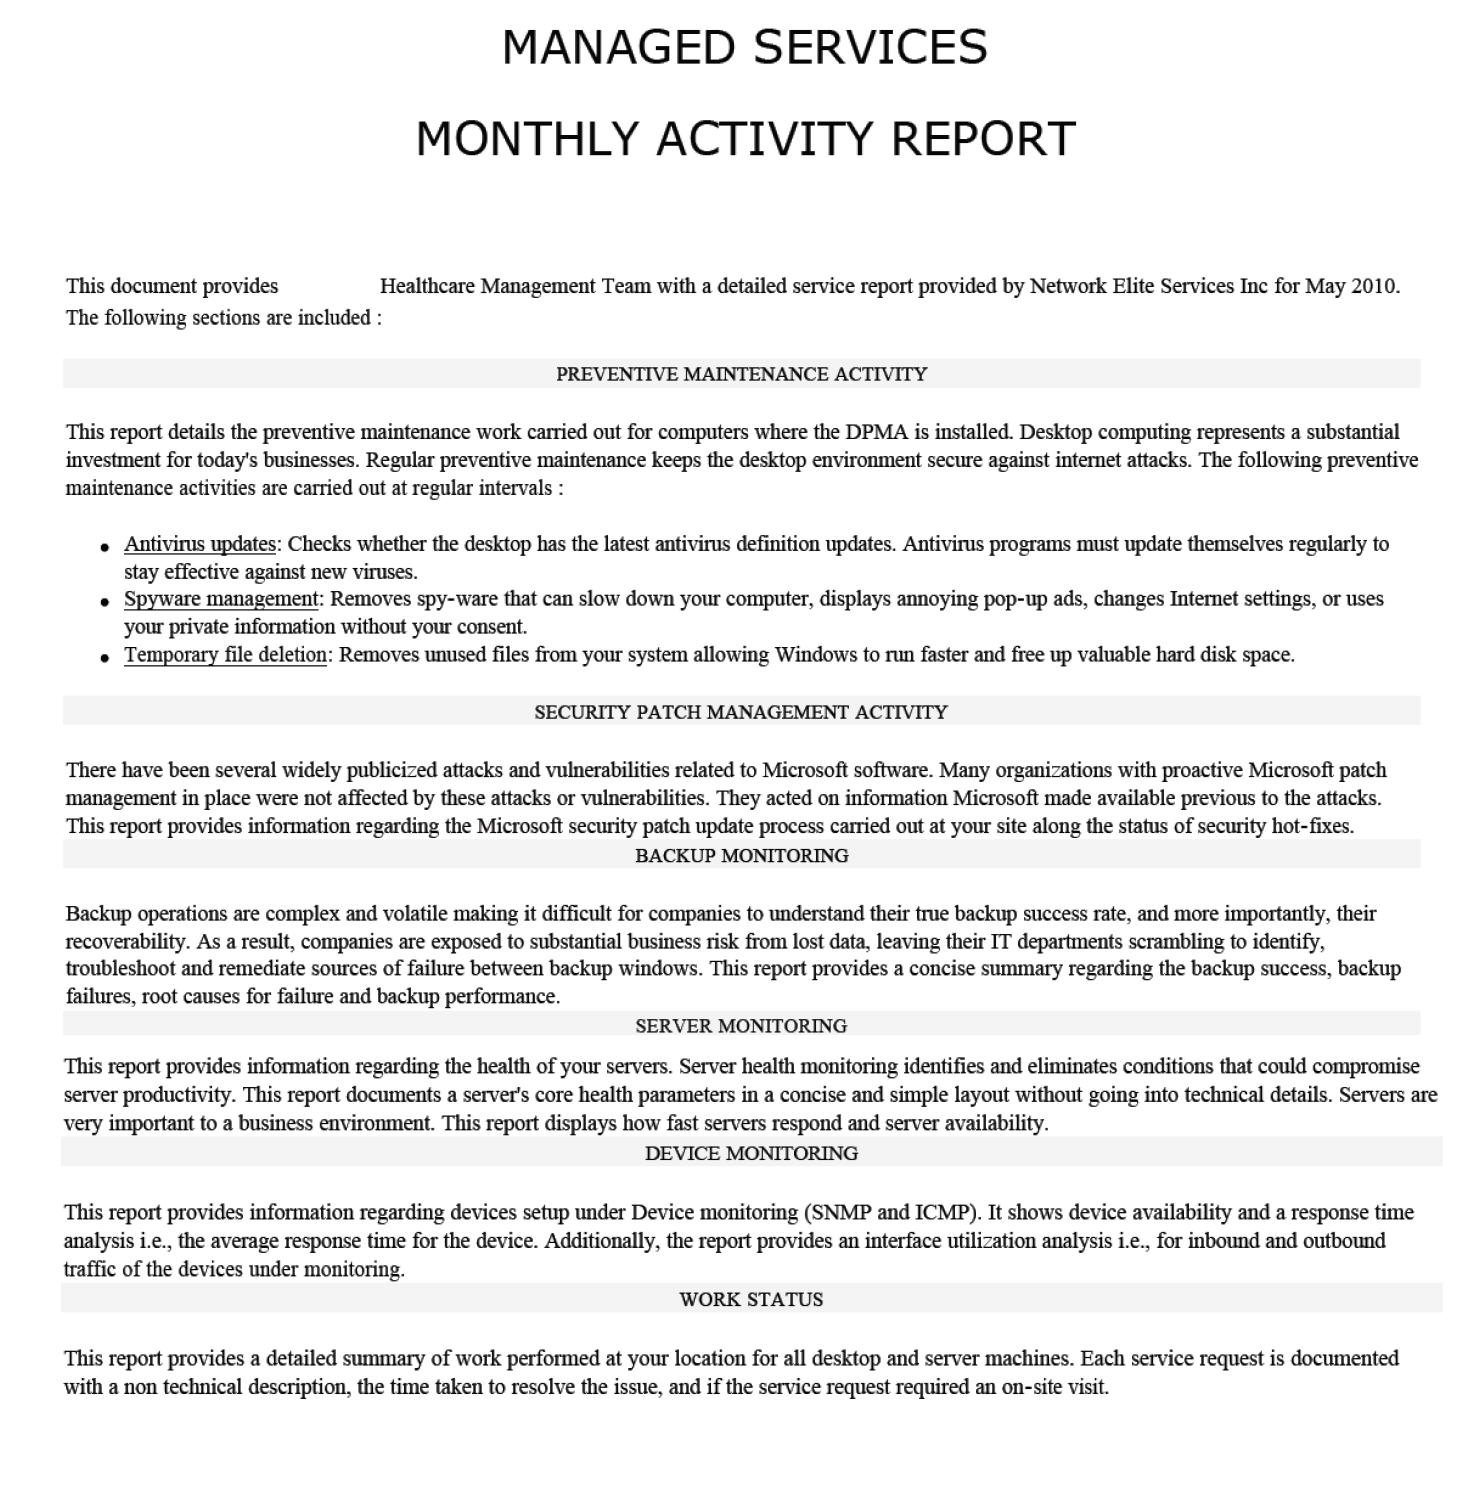 managed services english report example